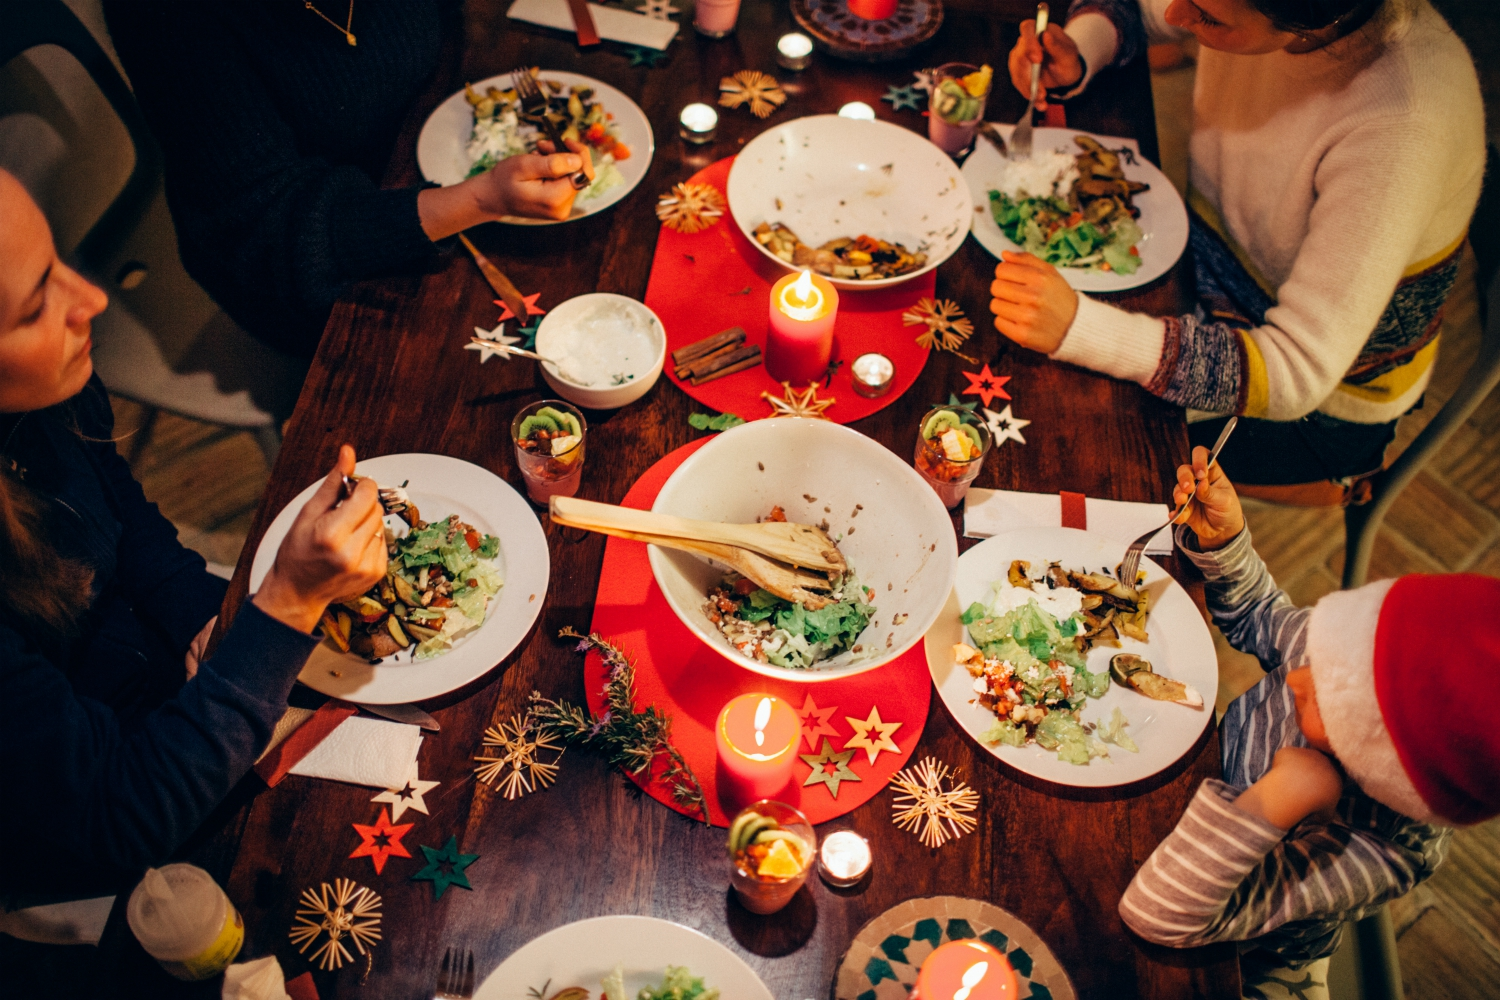 Bringing A Date To Christmas Dinner How To Avoid Disaster